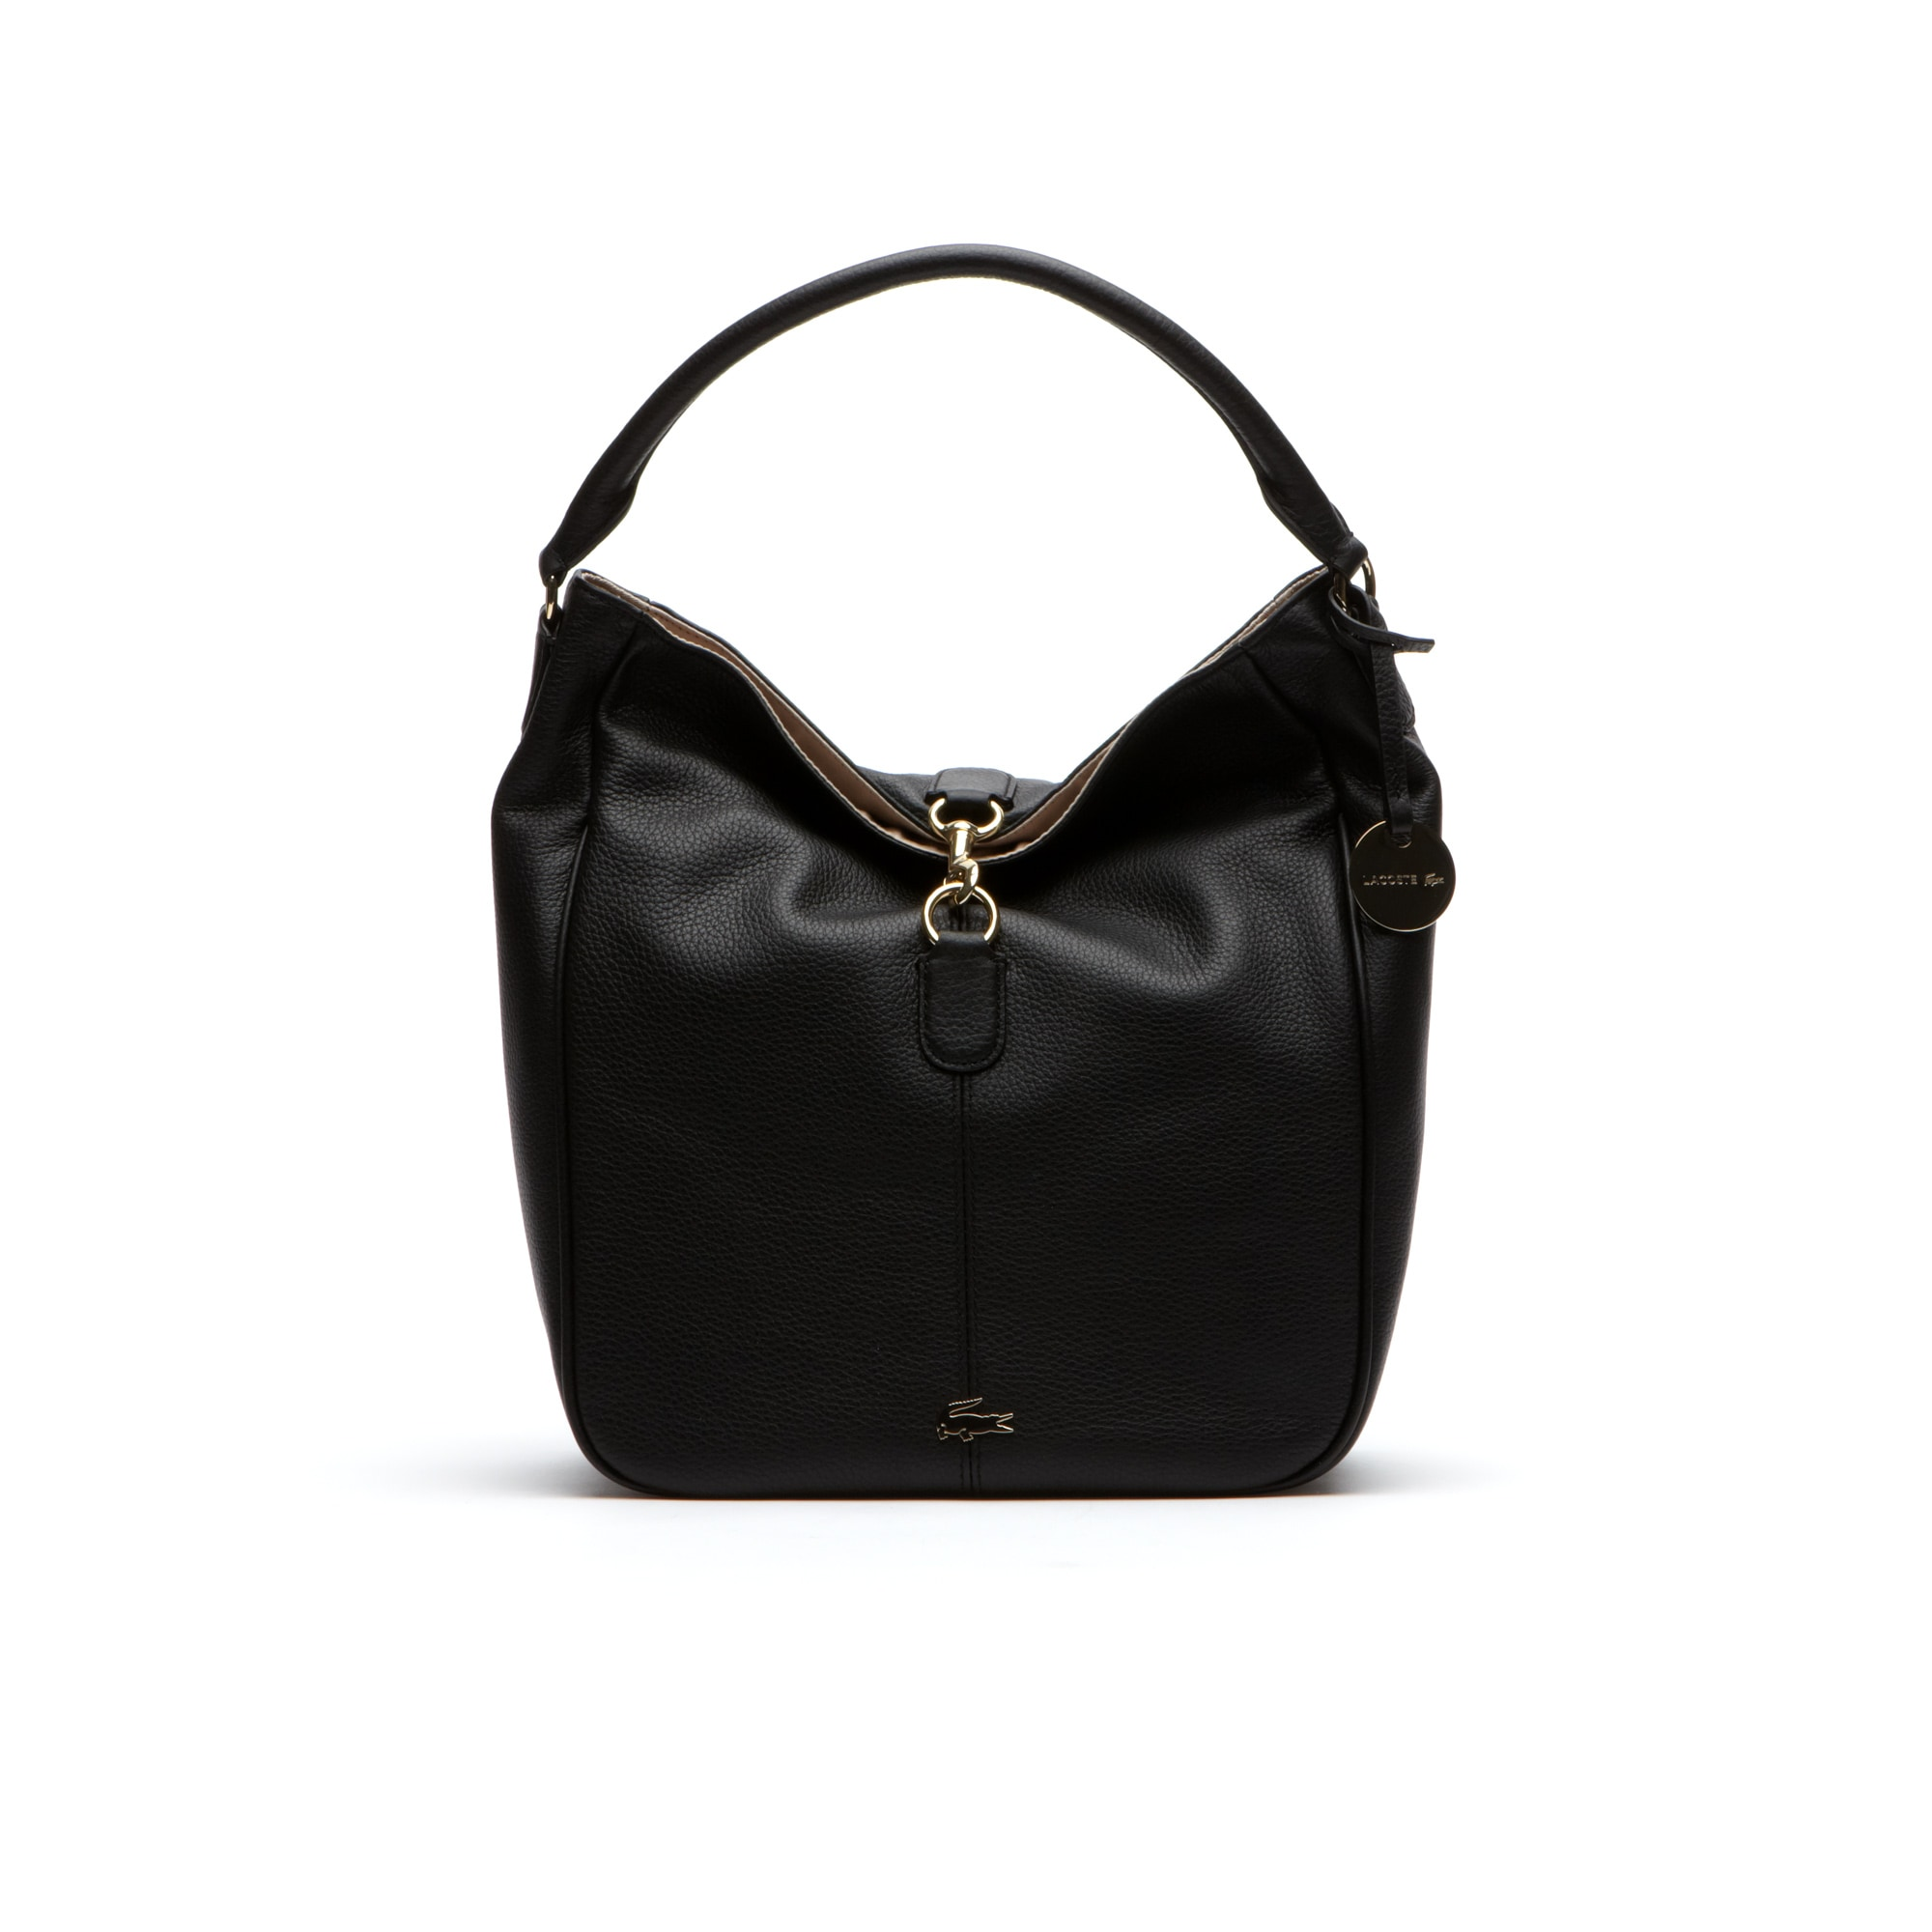 Daily hobo bag in leather